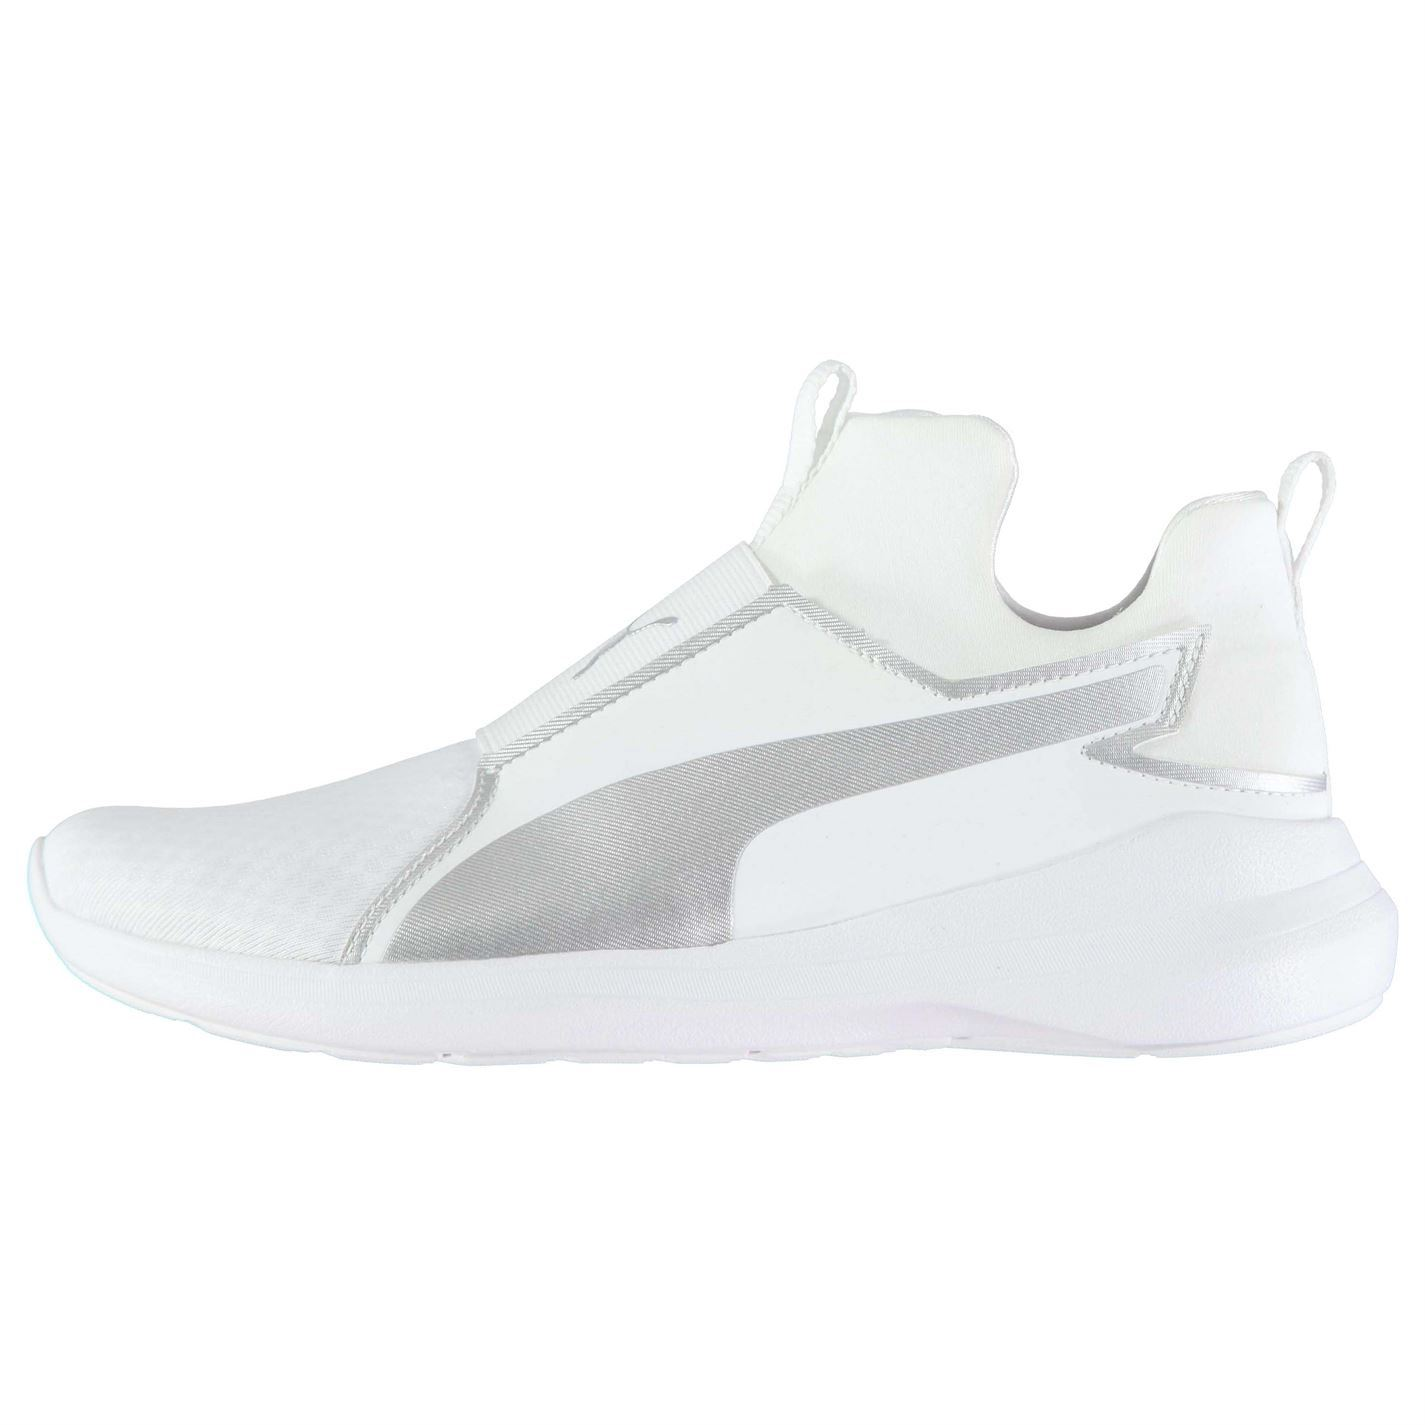 ... Puma Rebel Mid Fitness Training Shoes Womens White Gym Workout Trainers  Sneakers ... 72e1a14d0